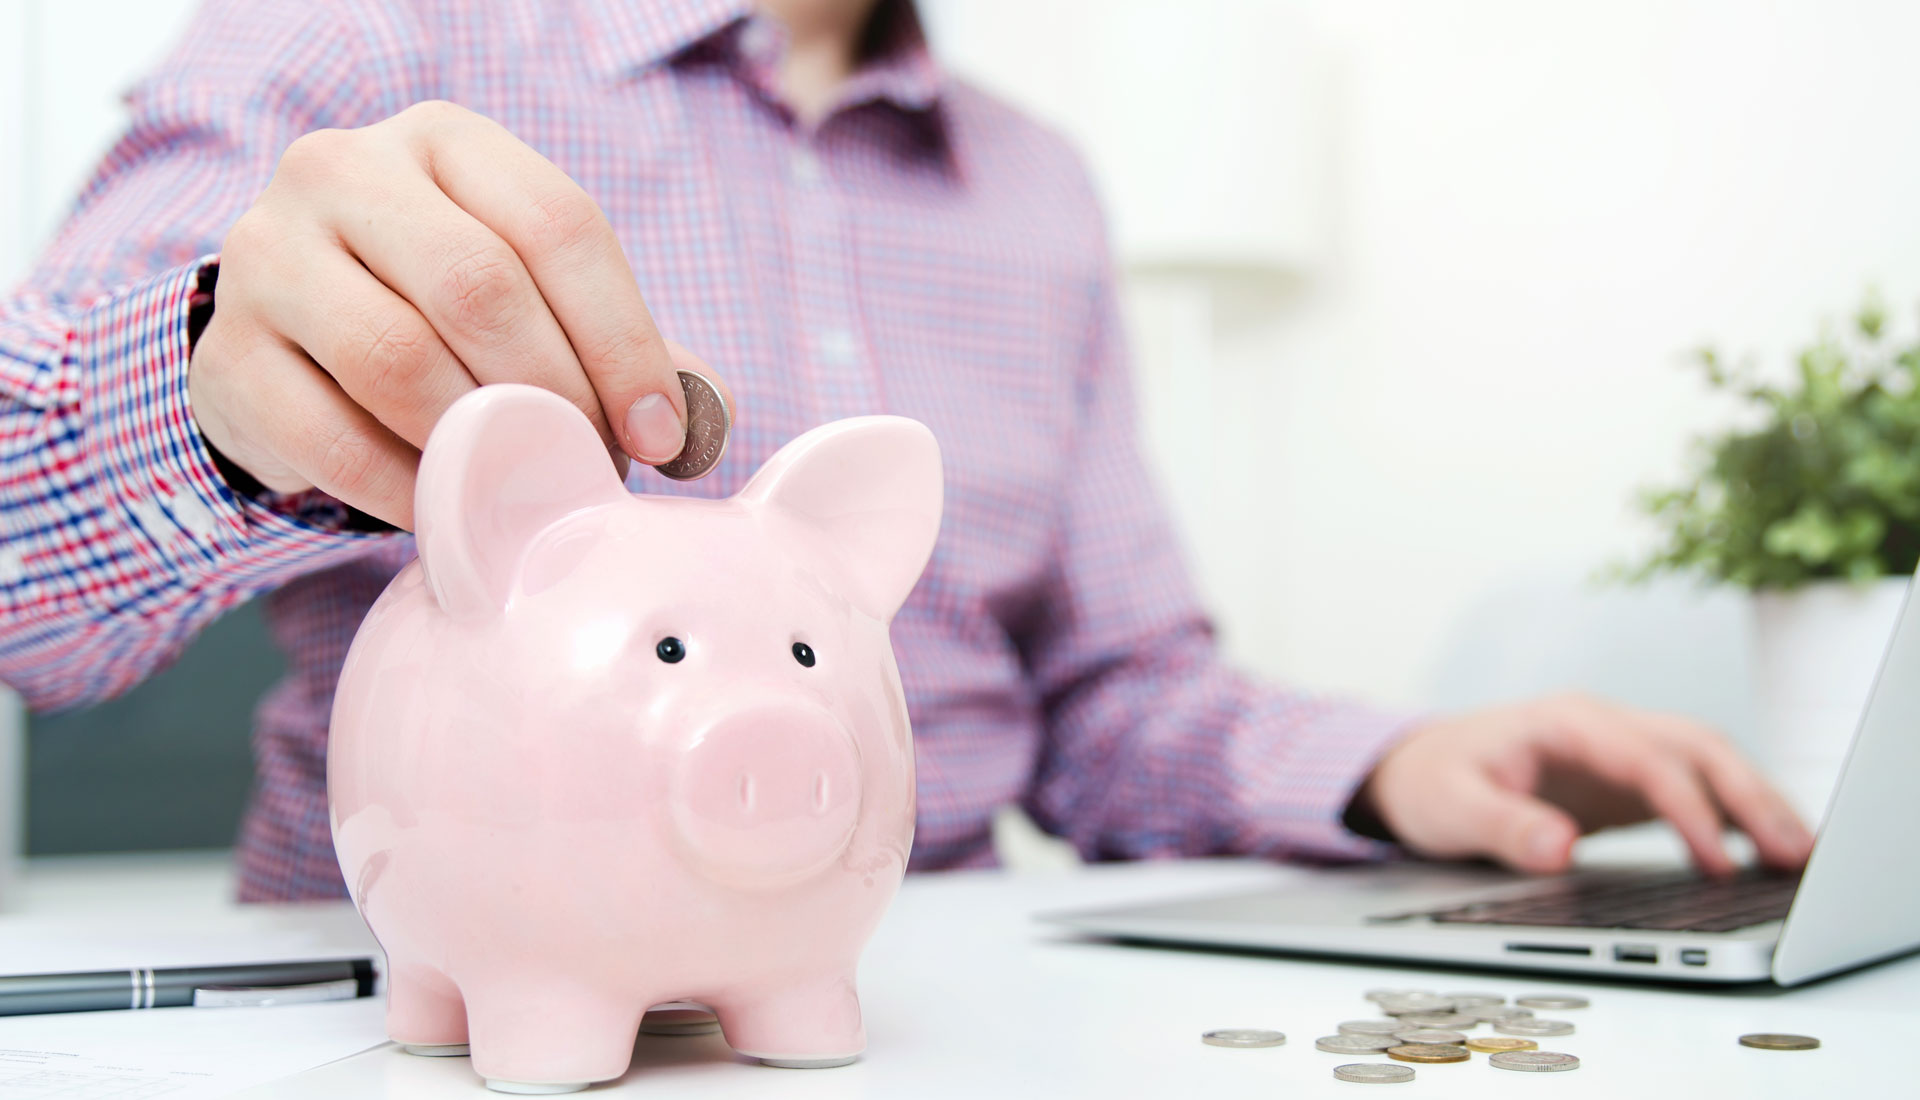 Savings Bank Accounts are like Working Desks, not Piggy Banks